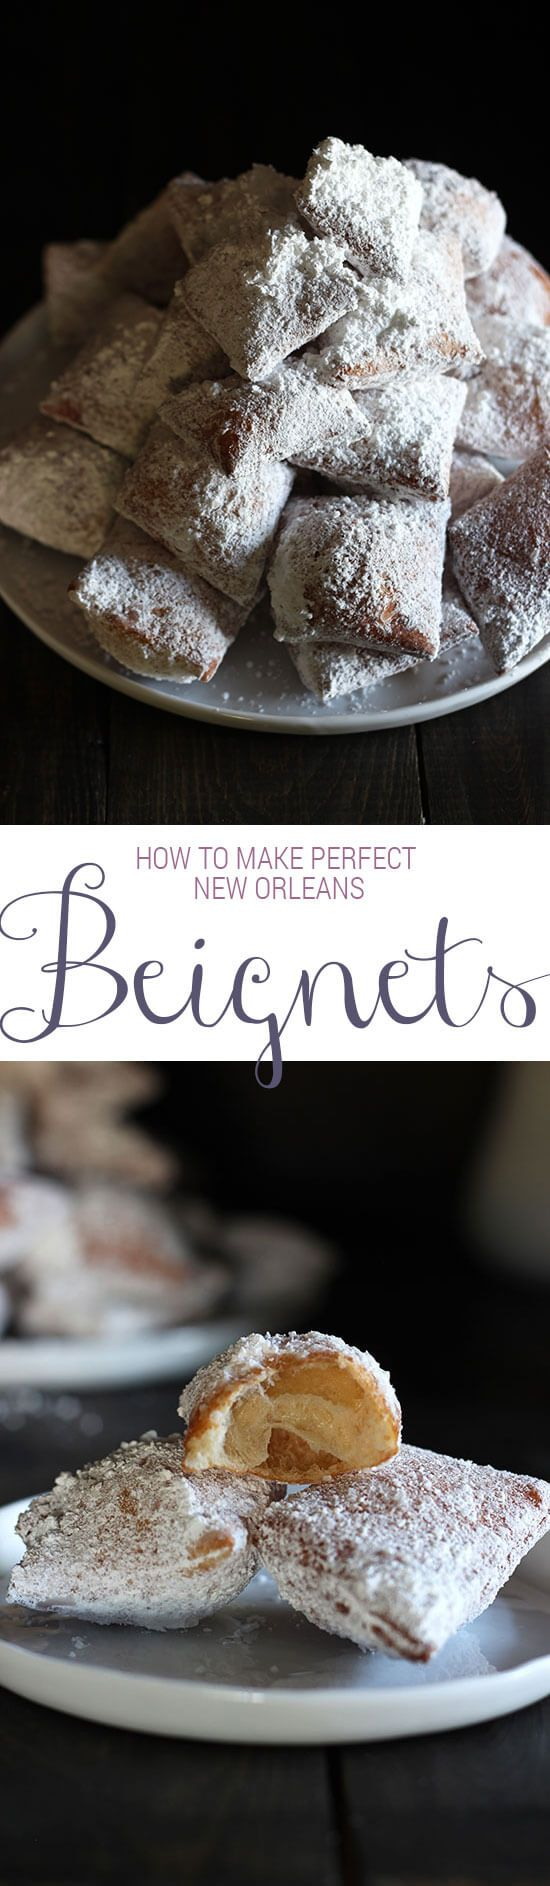 Make PERFECT New Orleans-style beignets right at home! SO SO GOOD. Can be made ahead of time too!: